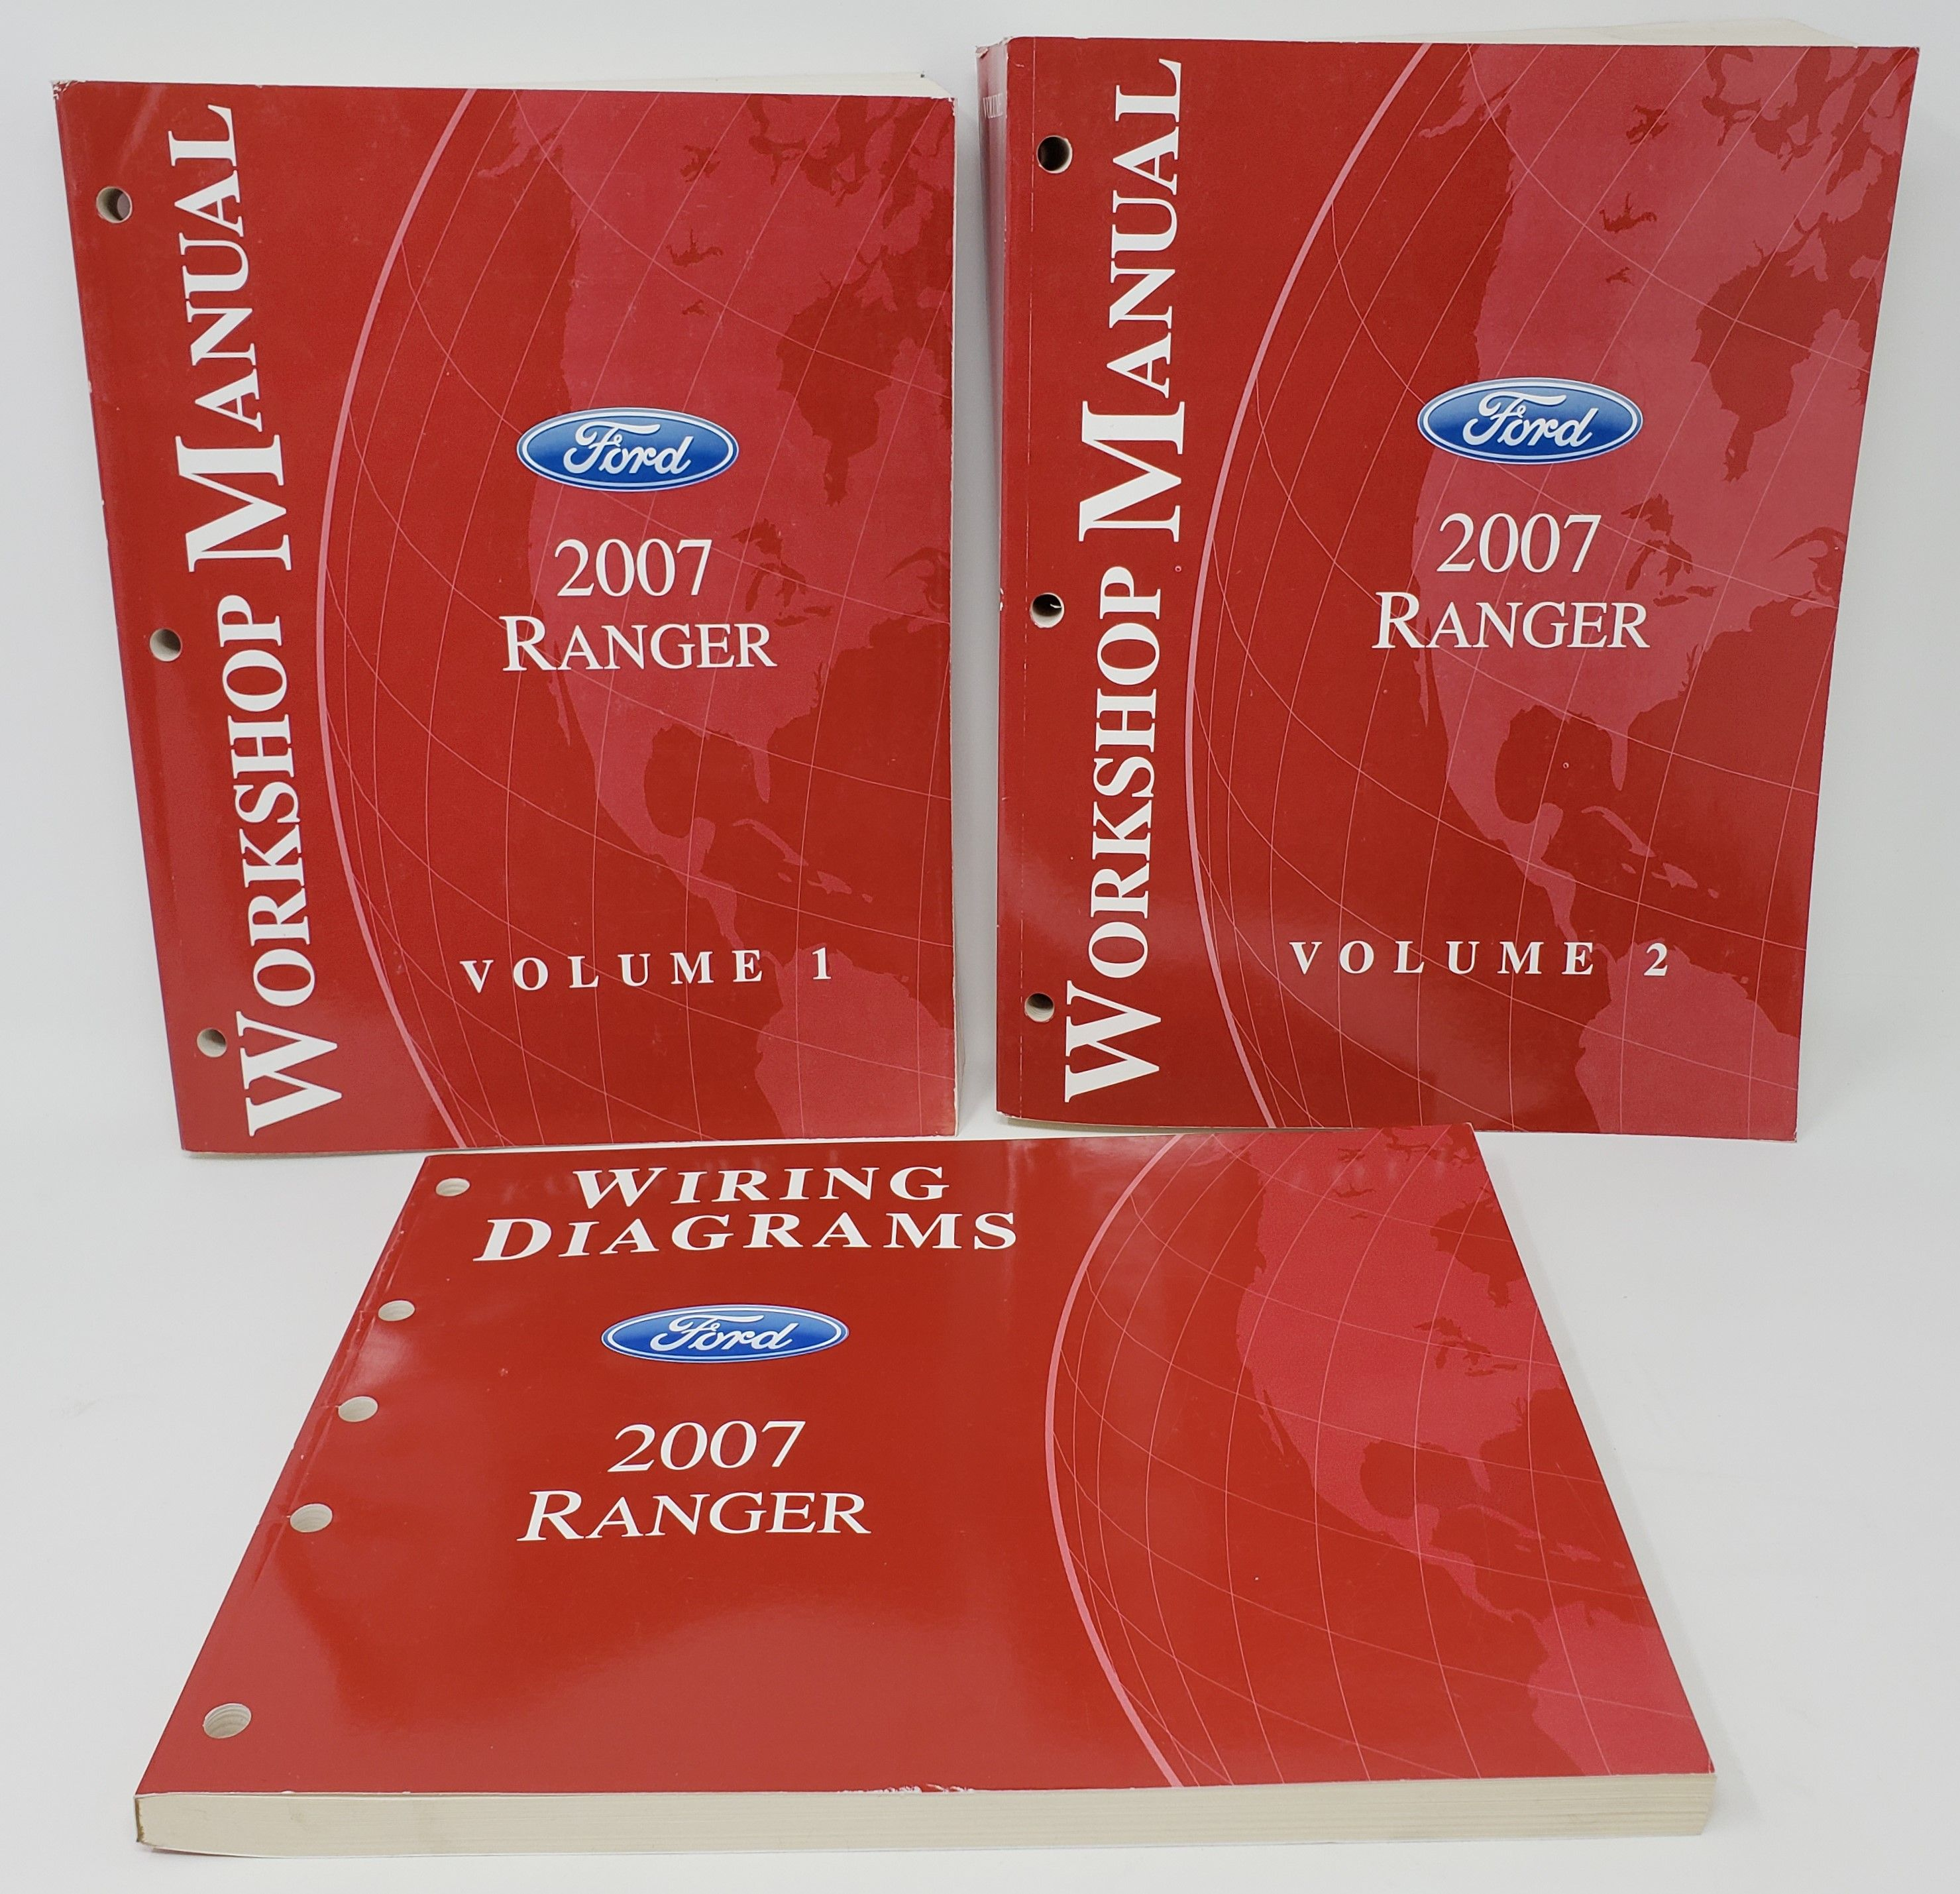 Details About 2007 Ford Ranger Volume 1  U0026 2 Workshop